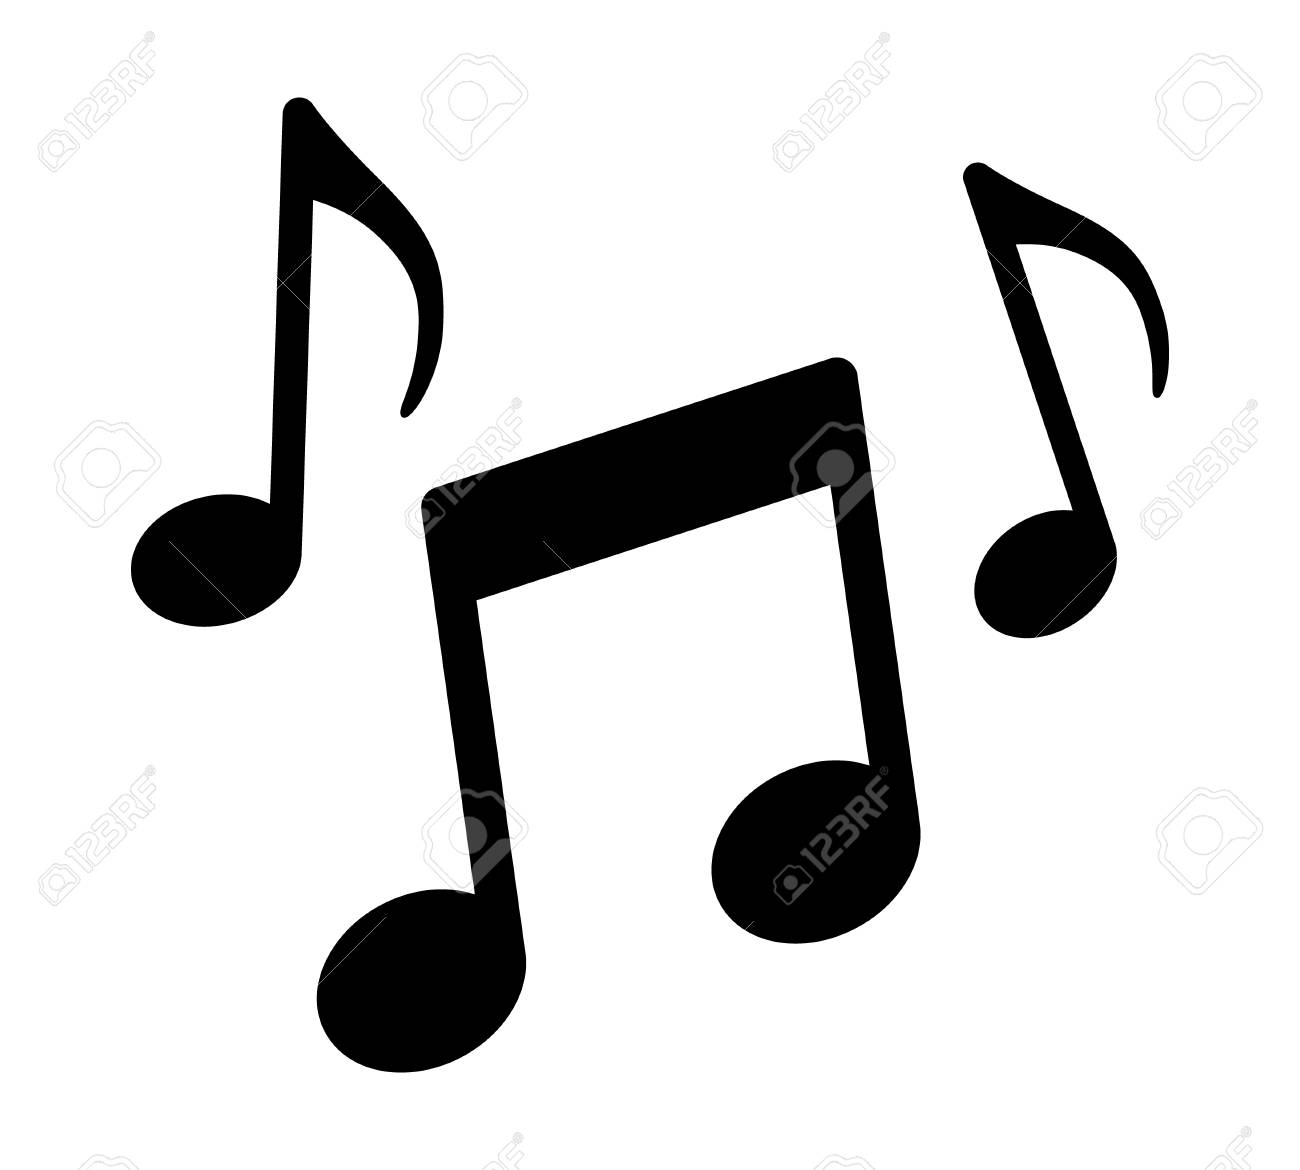 Music Notes, Song, Melody Or Tune Flat Vector Icon For Musical.. Royalty Free Cliparts, Vectors, And Stock Illustration. Image 84438442.